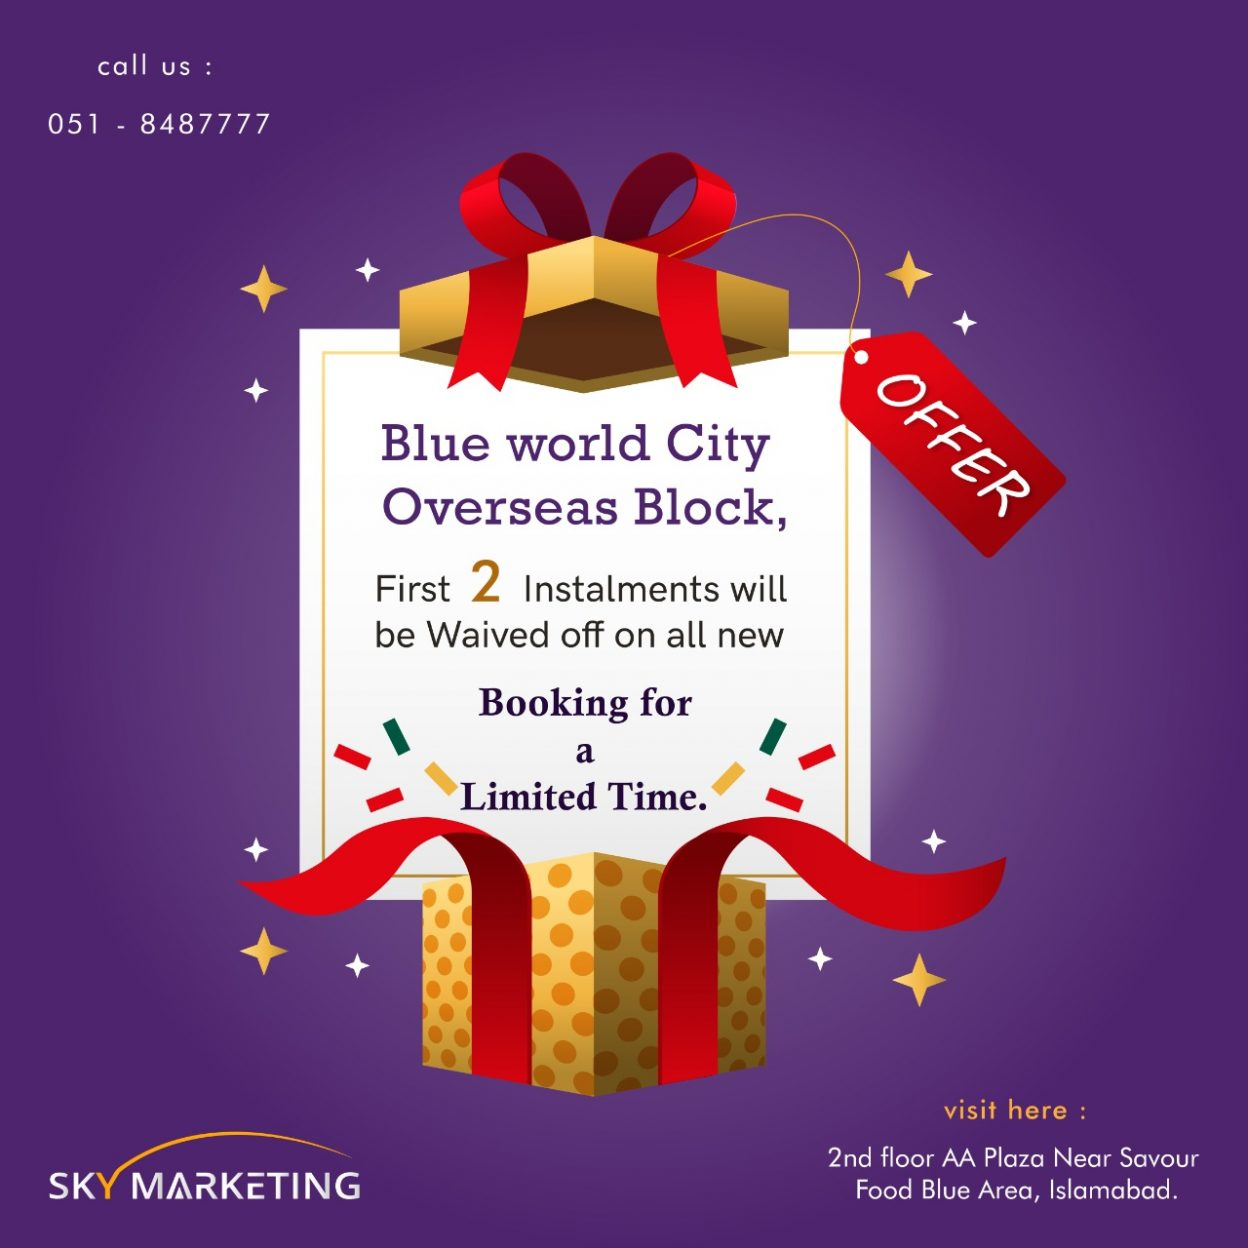 Discount offered by Blue World City